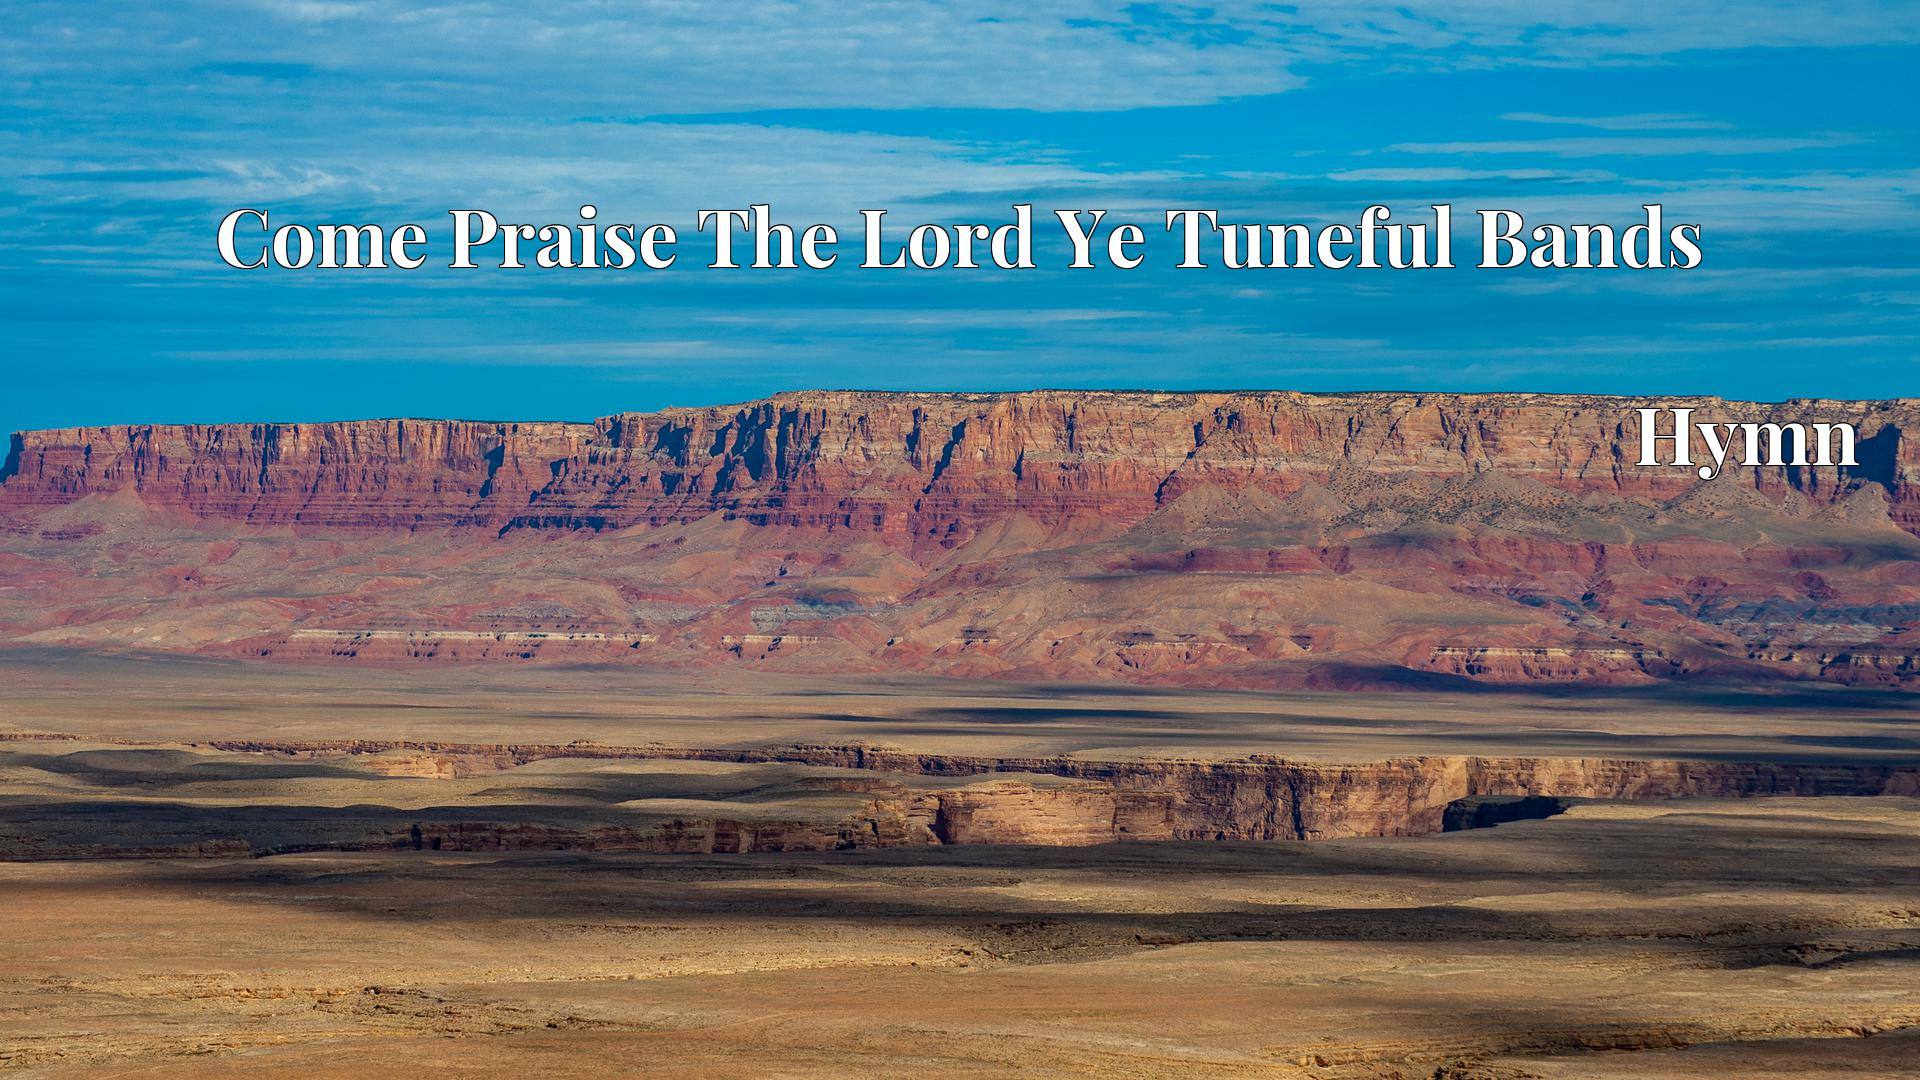 Come Praise The Lord Ye Tuneful Bands Hymn Lyric